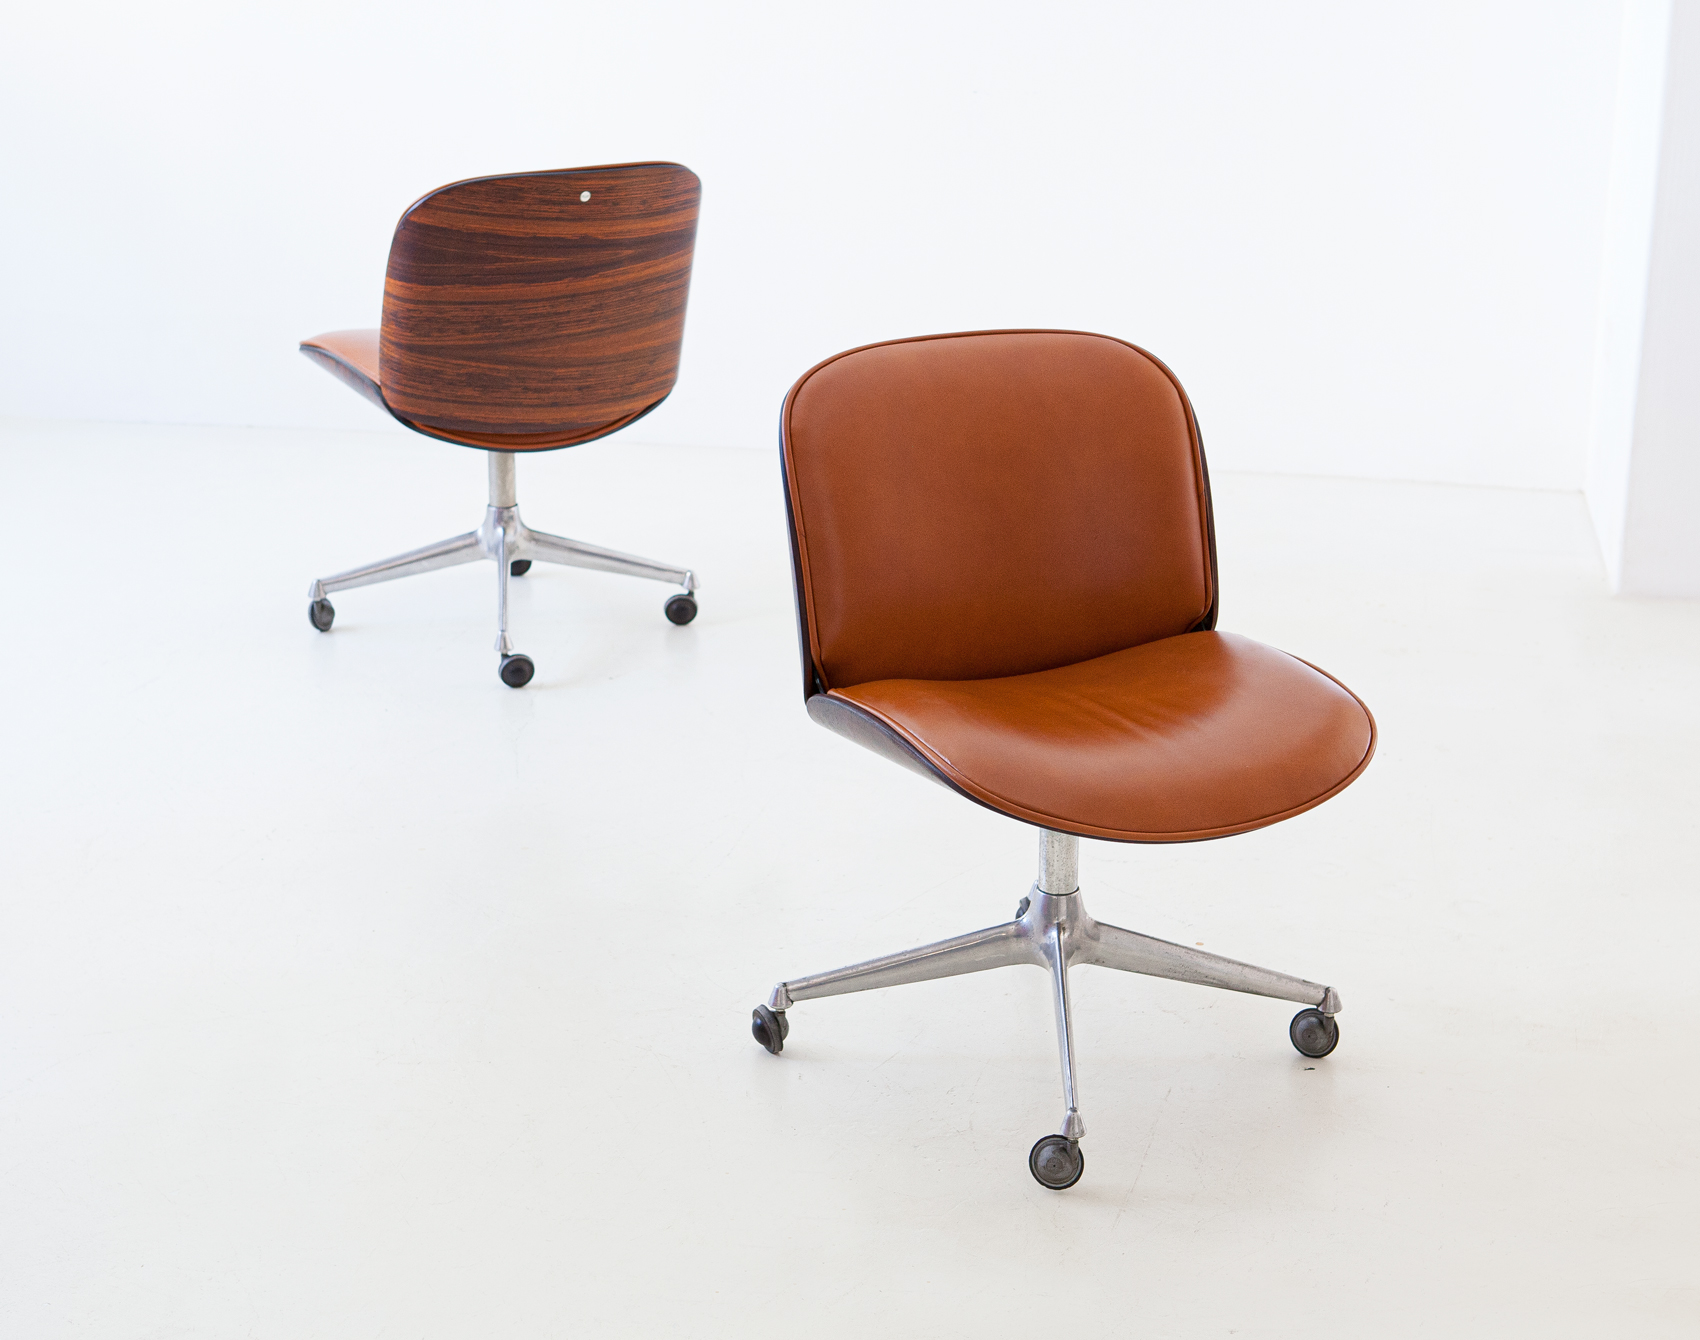 1950s-rosewood-and-cognac-leather-swivel-chair-by-ico-parisi-for-mim-3-se328